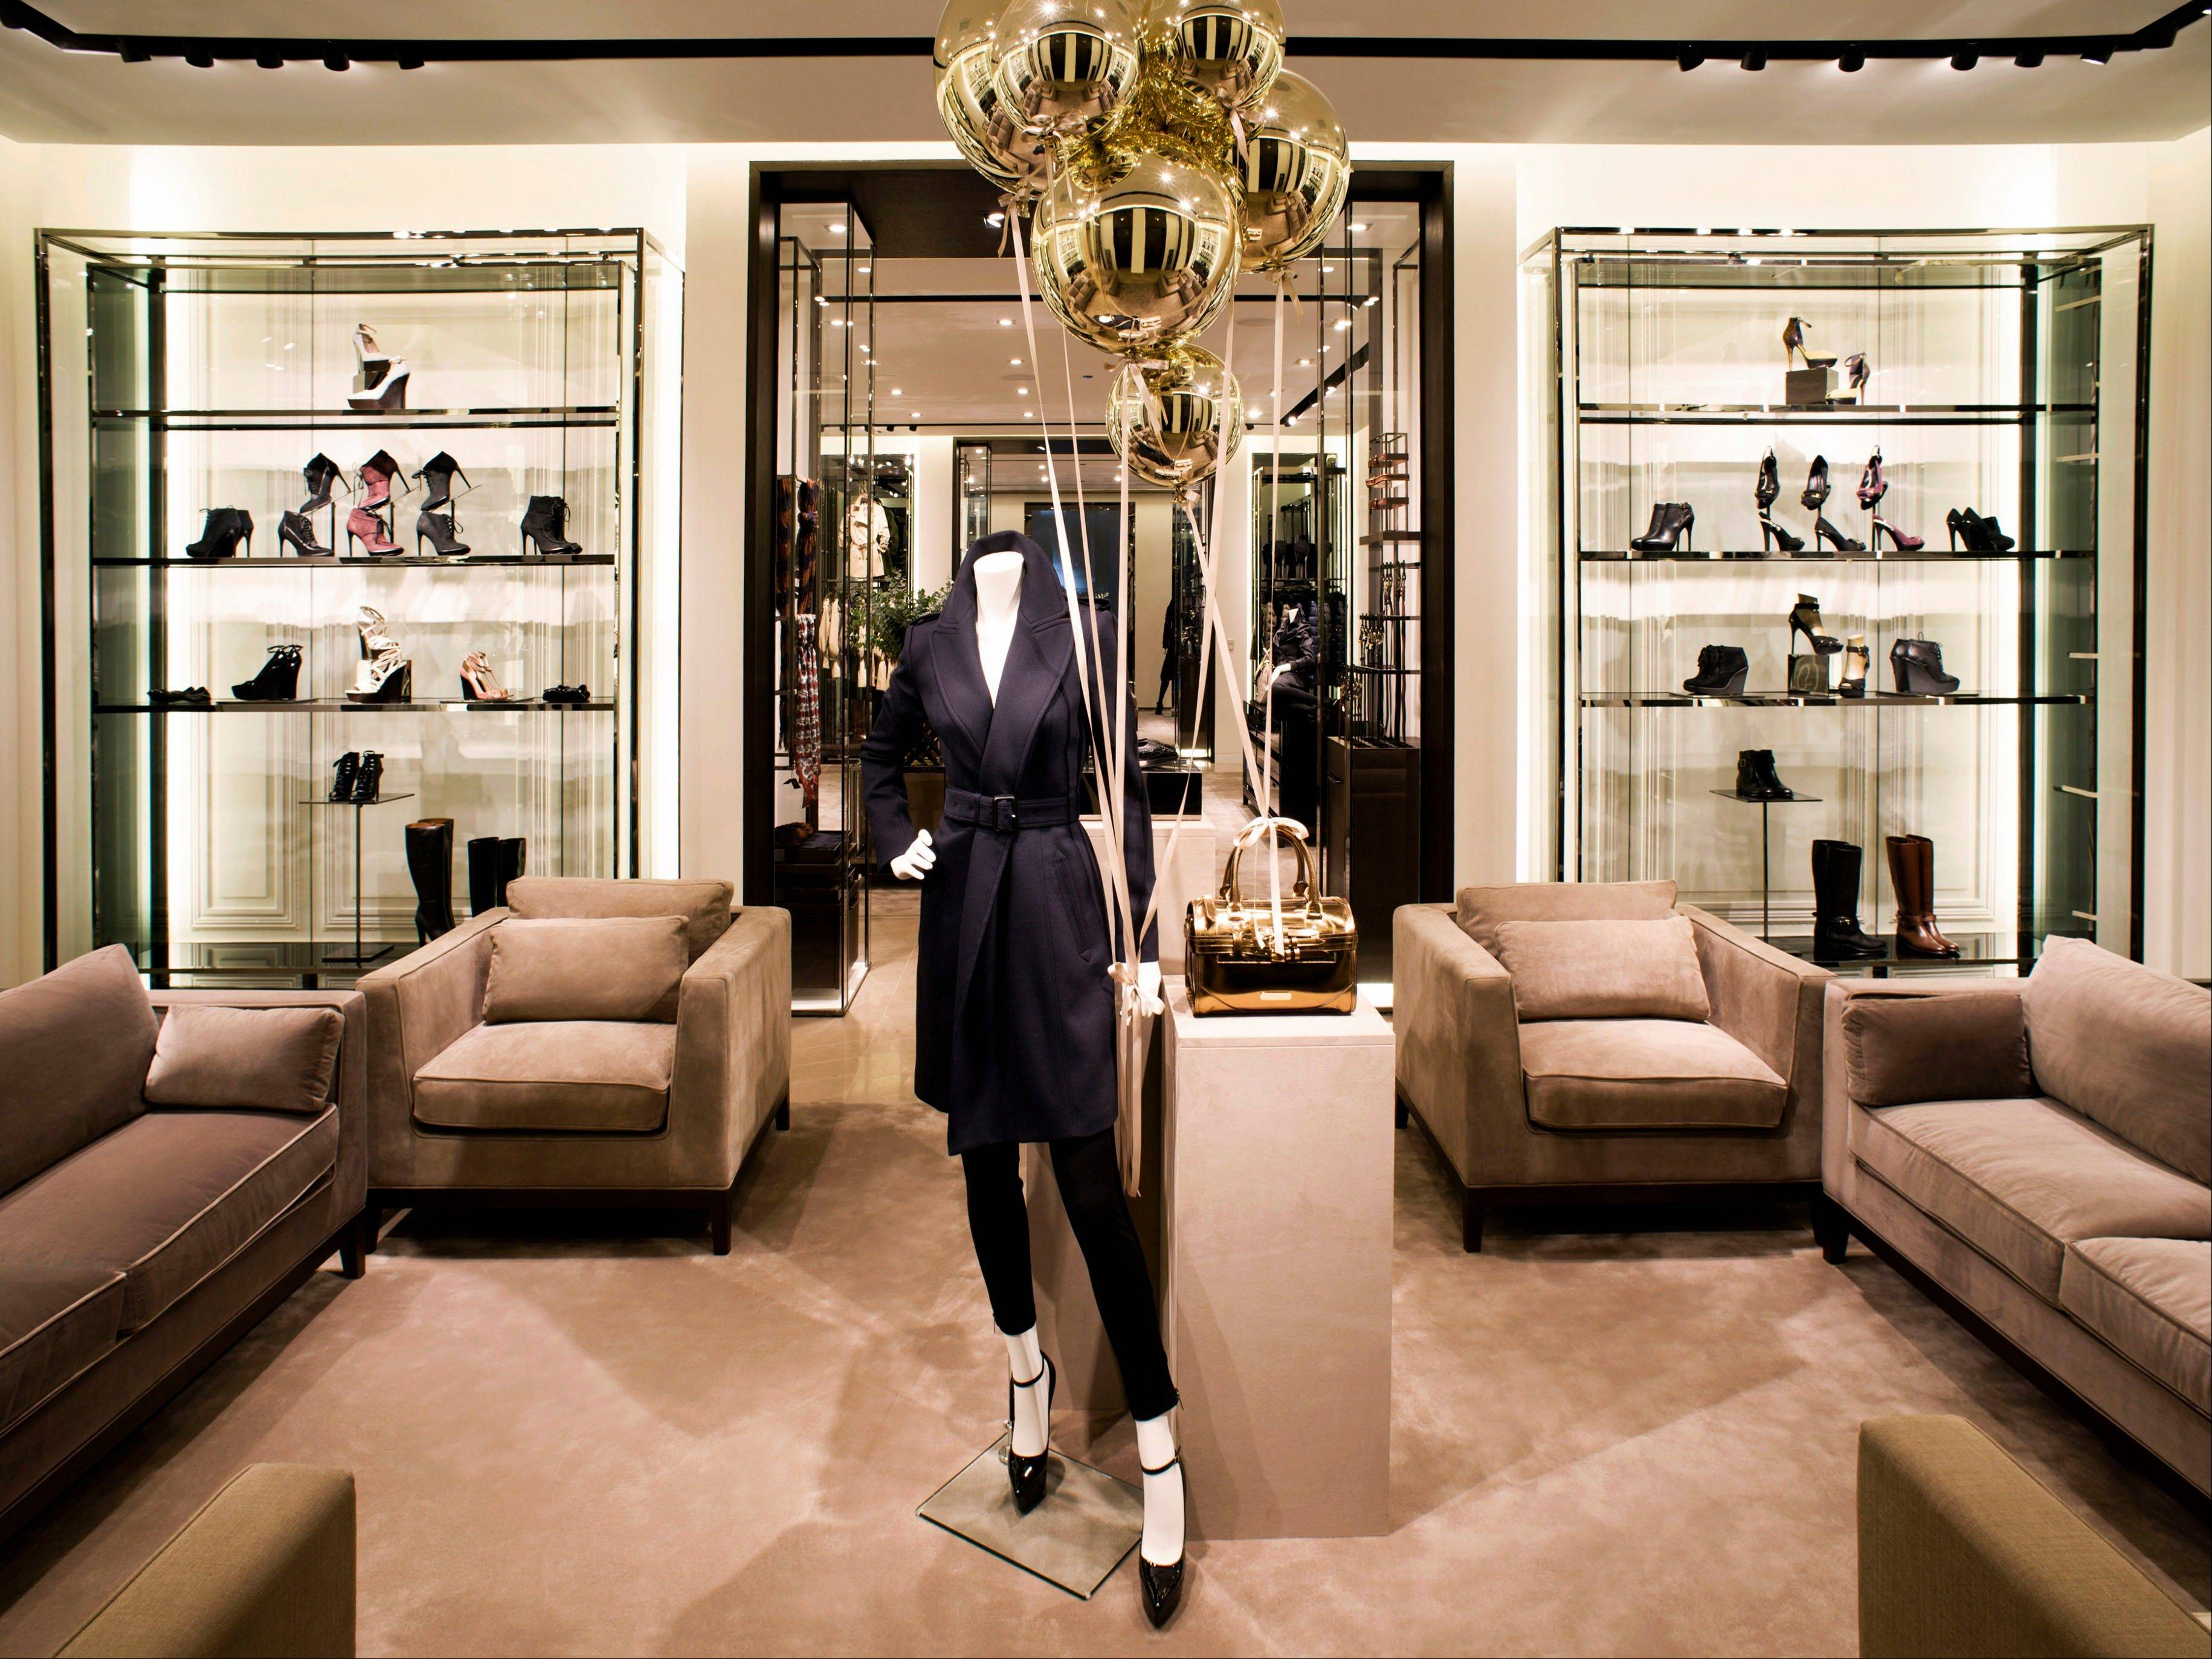 An interior view of the new Burberry flagship store.